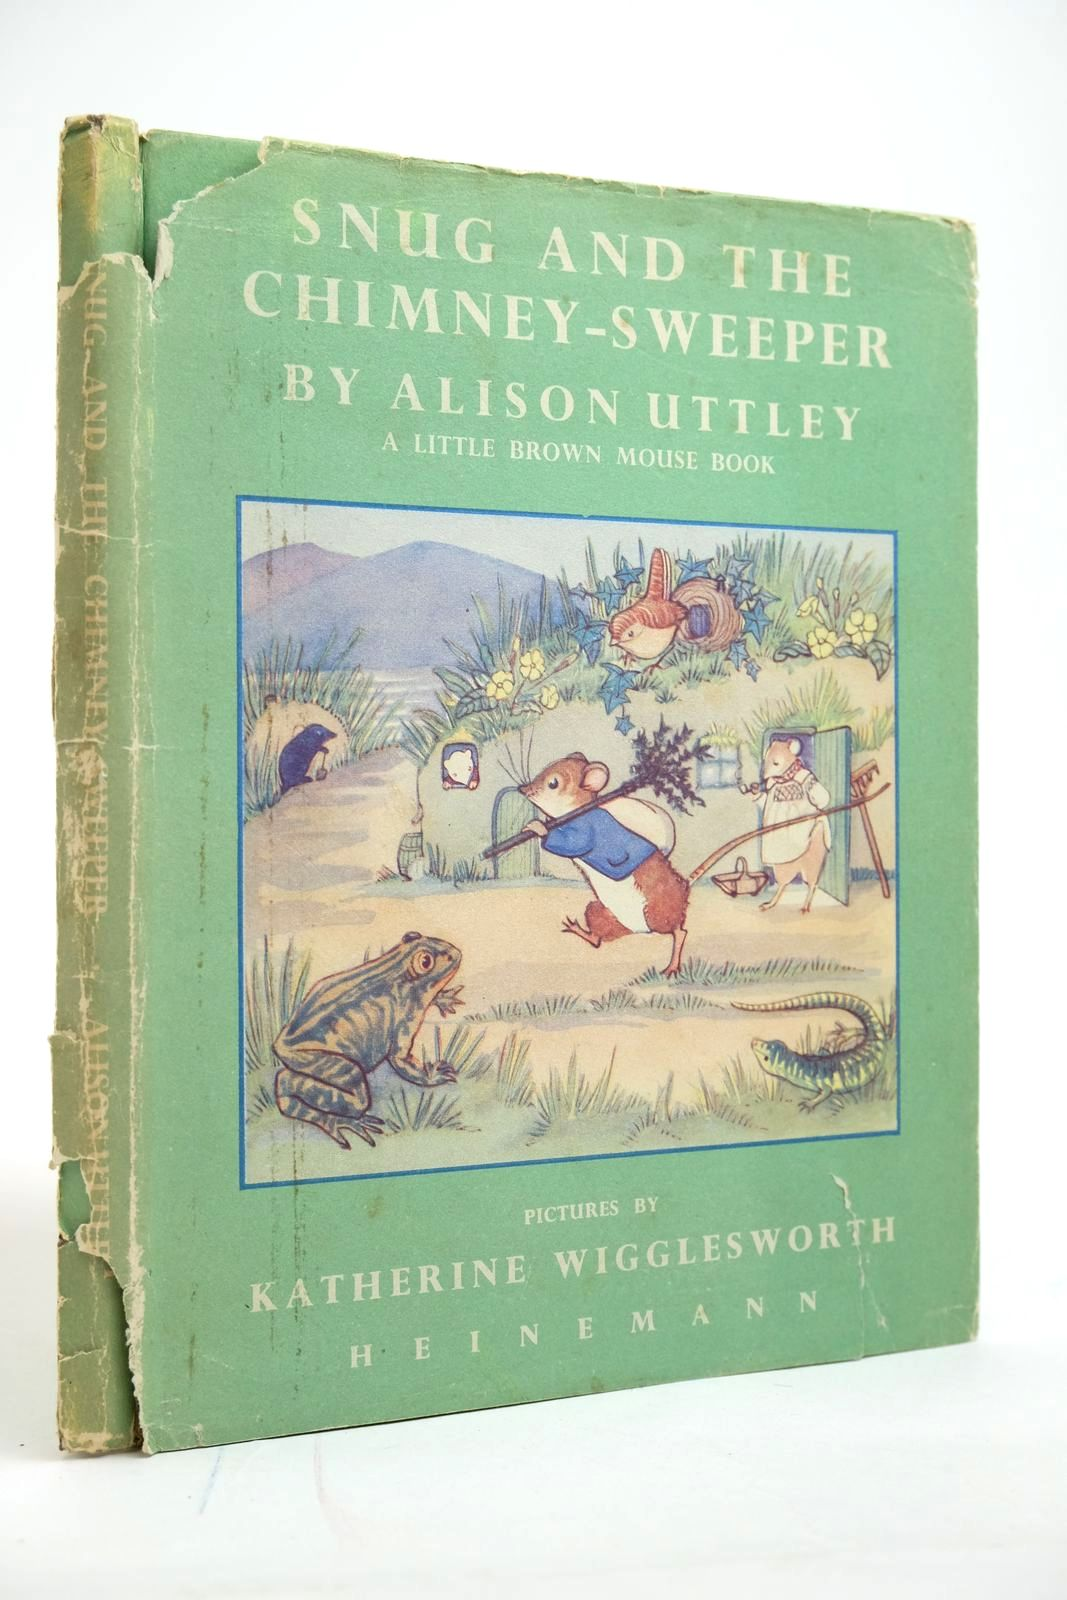 Photo of SNUG AND THE CHIMNEY-SWEEPER written by Uttley, Alison illustrated by Wigglesworth, Katherine published by Heinemann (STOCK CODE: 2135095)  for sale by Stella & Rose's Books